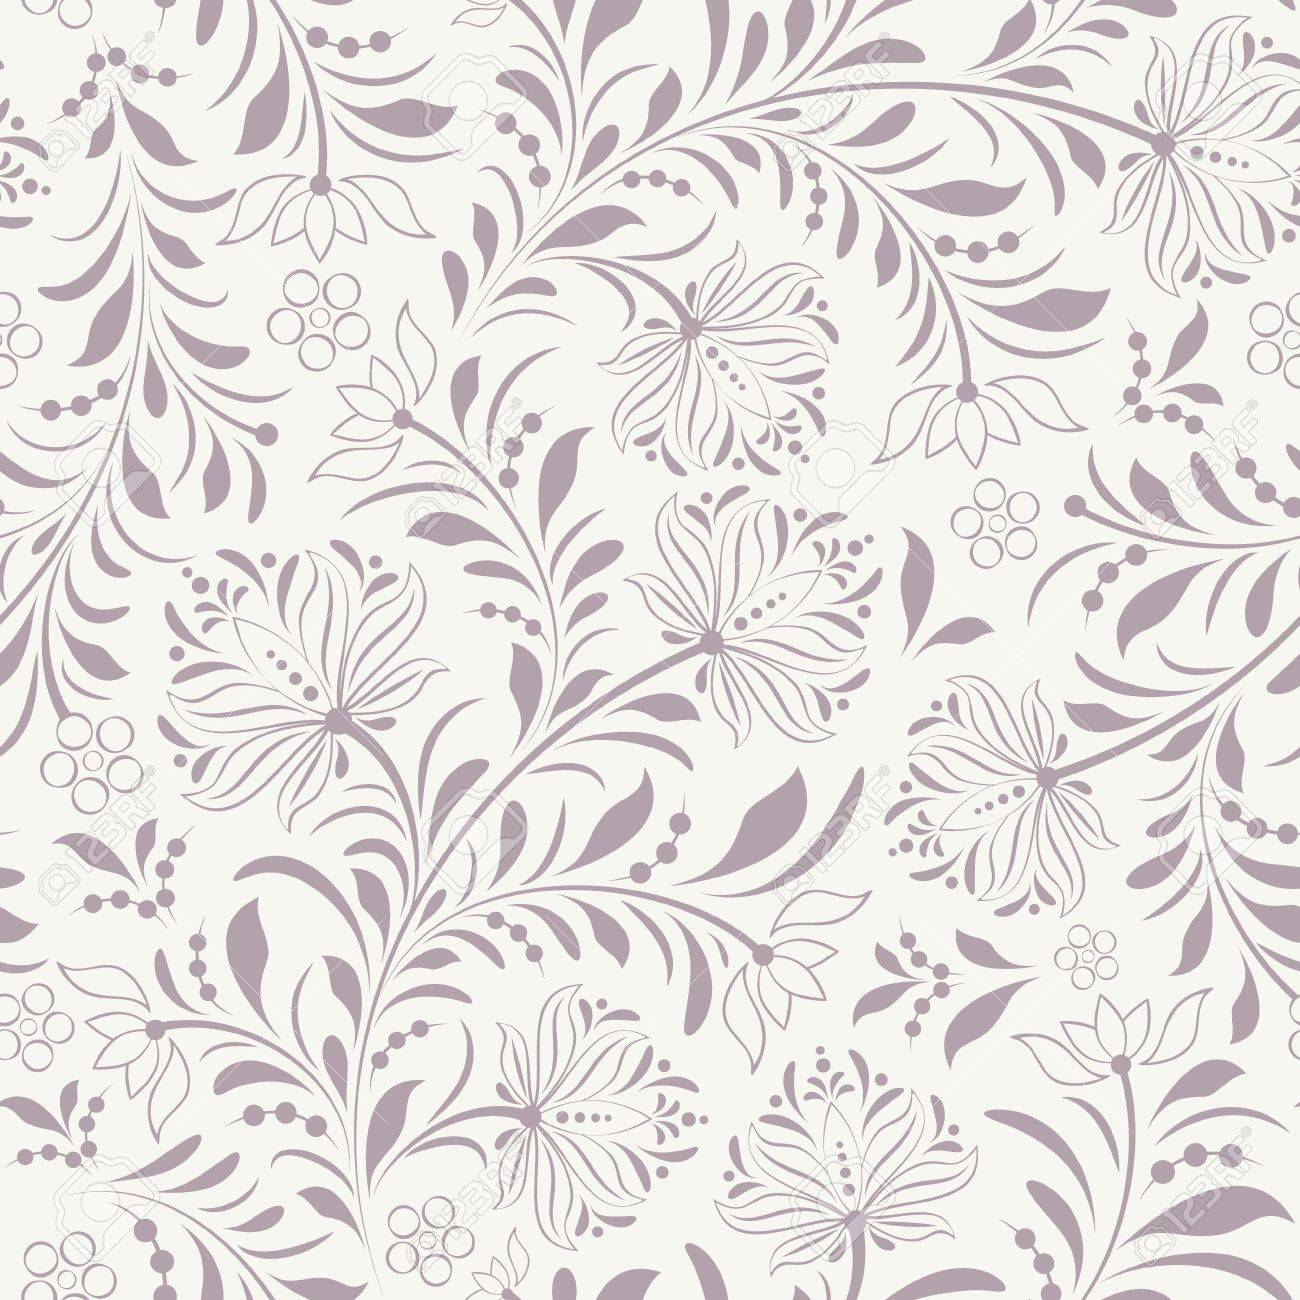 illustration of seamless pattern with abstract flowers.Floral background Stock Vector - 15687665